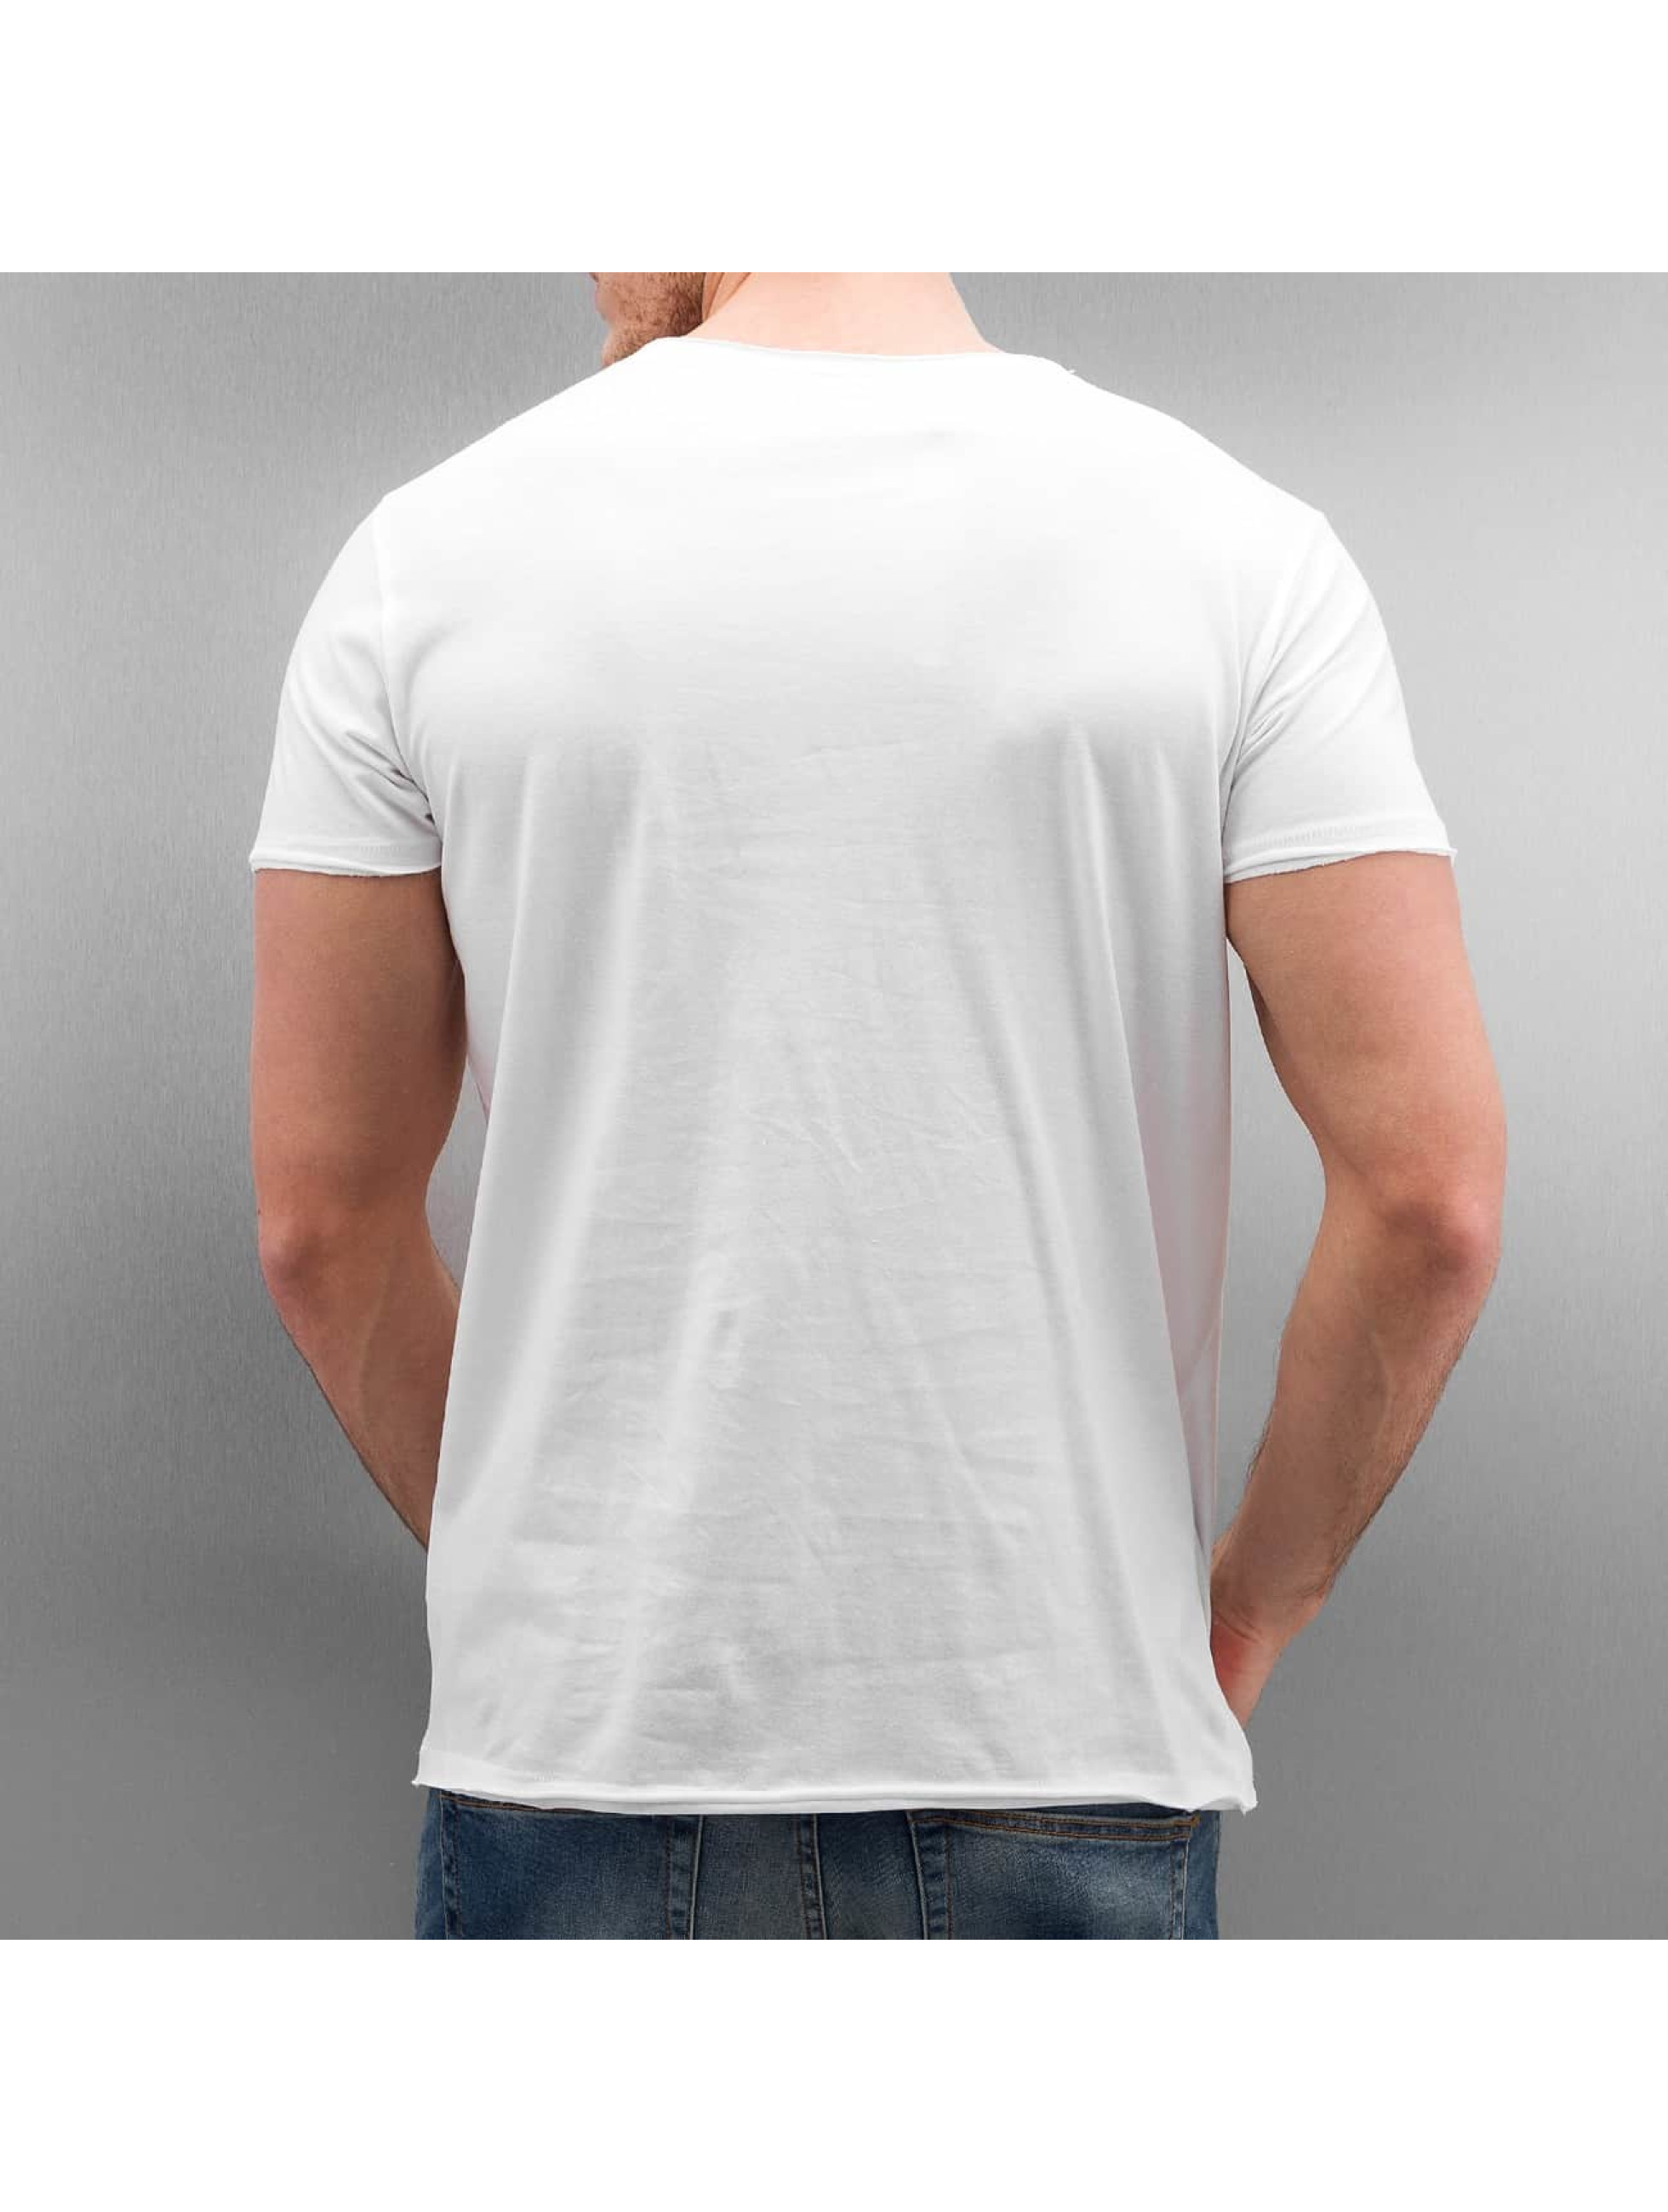 Authentic Style T-Shirt Oceancity white